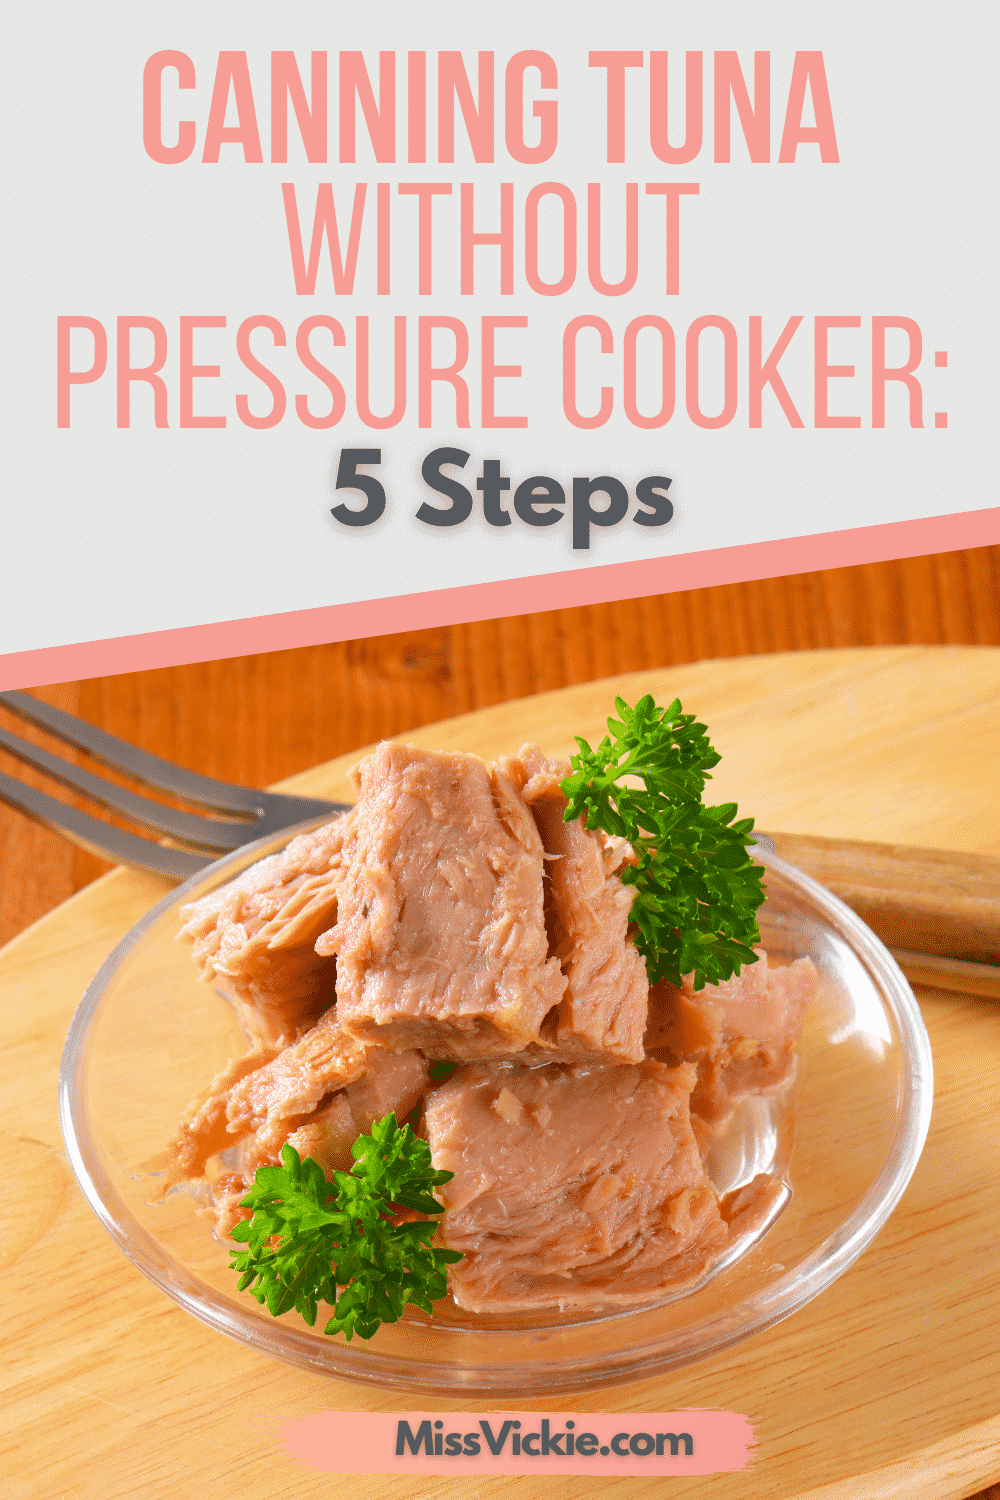 Canning Tuna Without Pressure Cooker